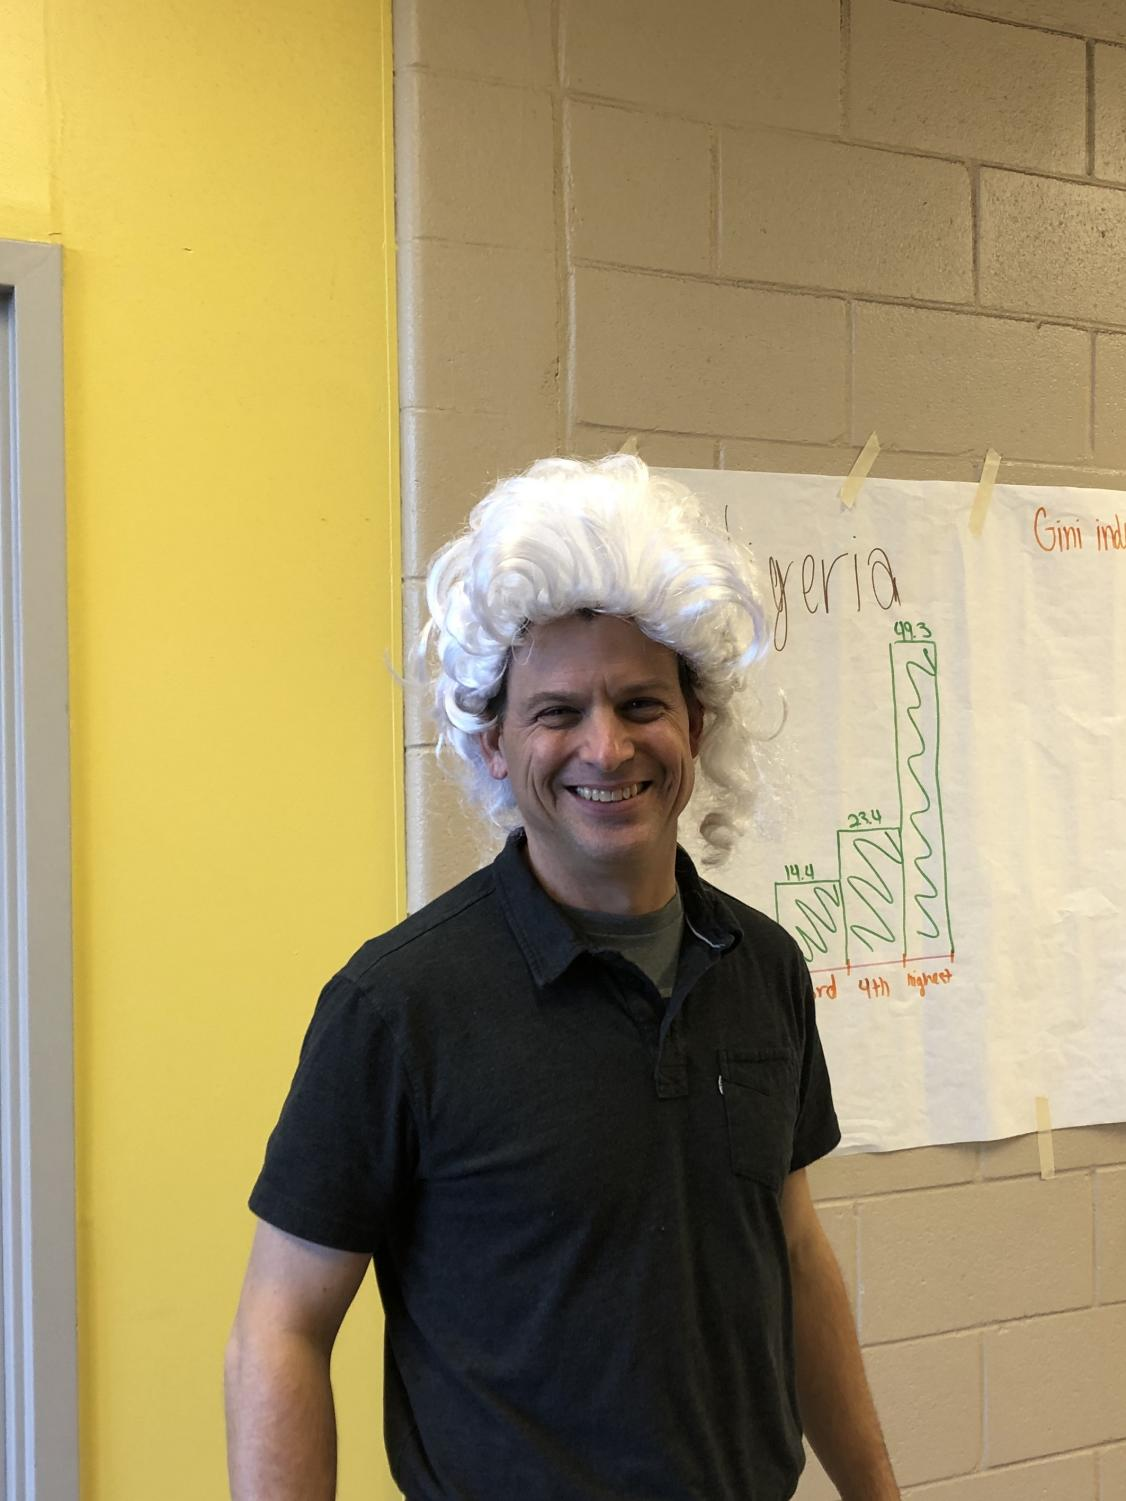 Mr. Brady wearing his whig wig.